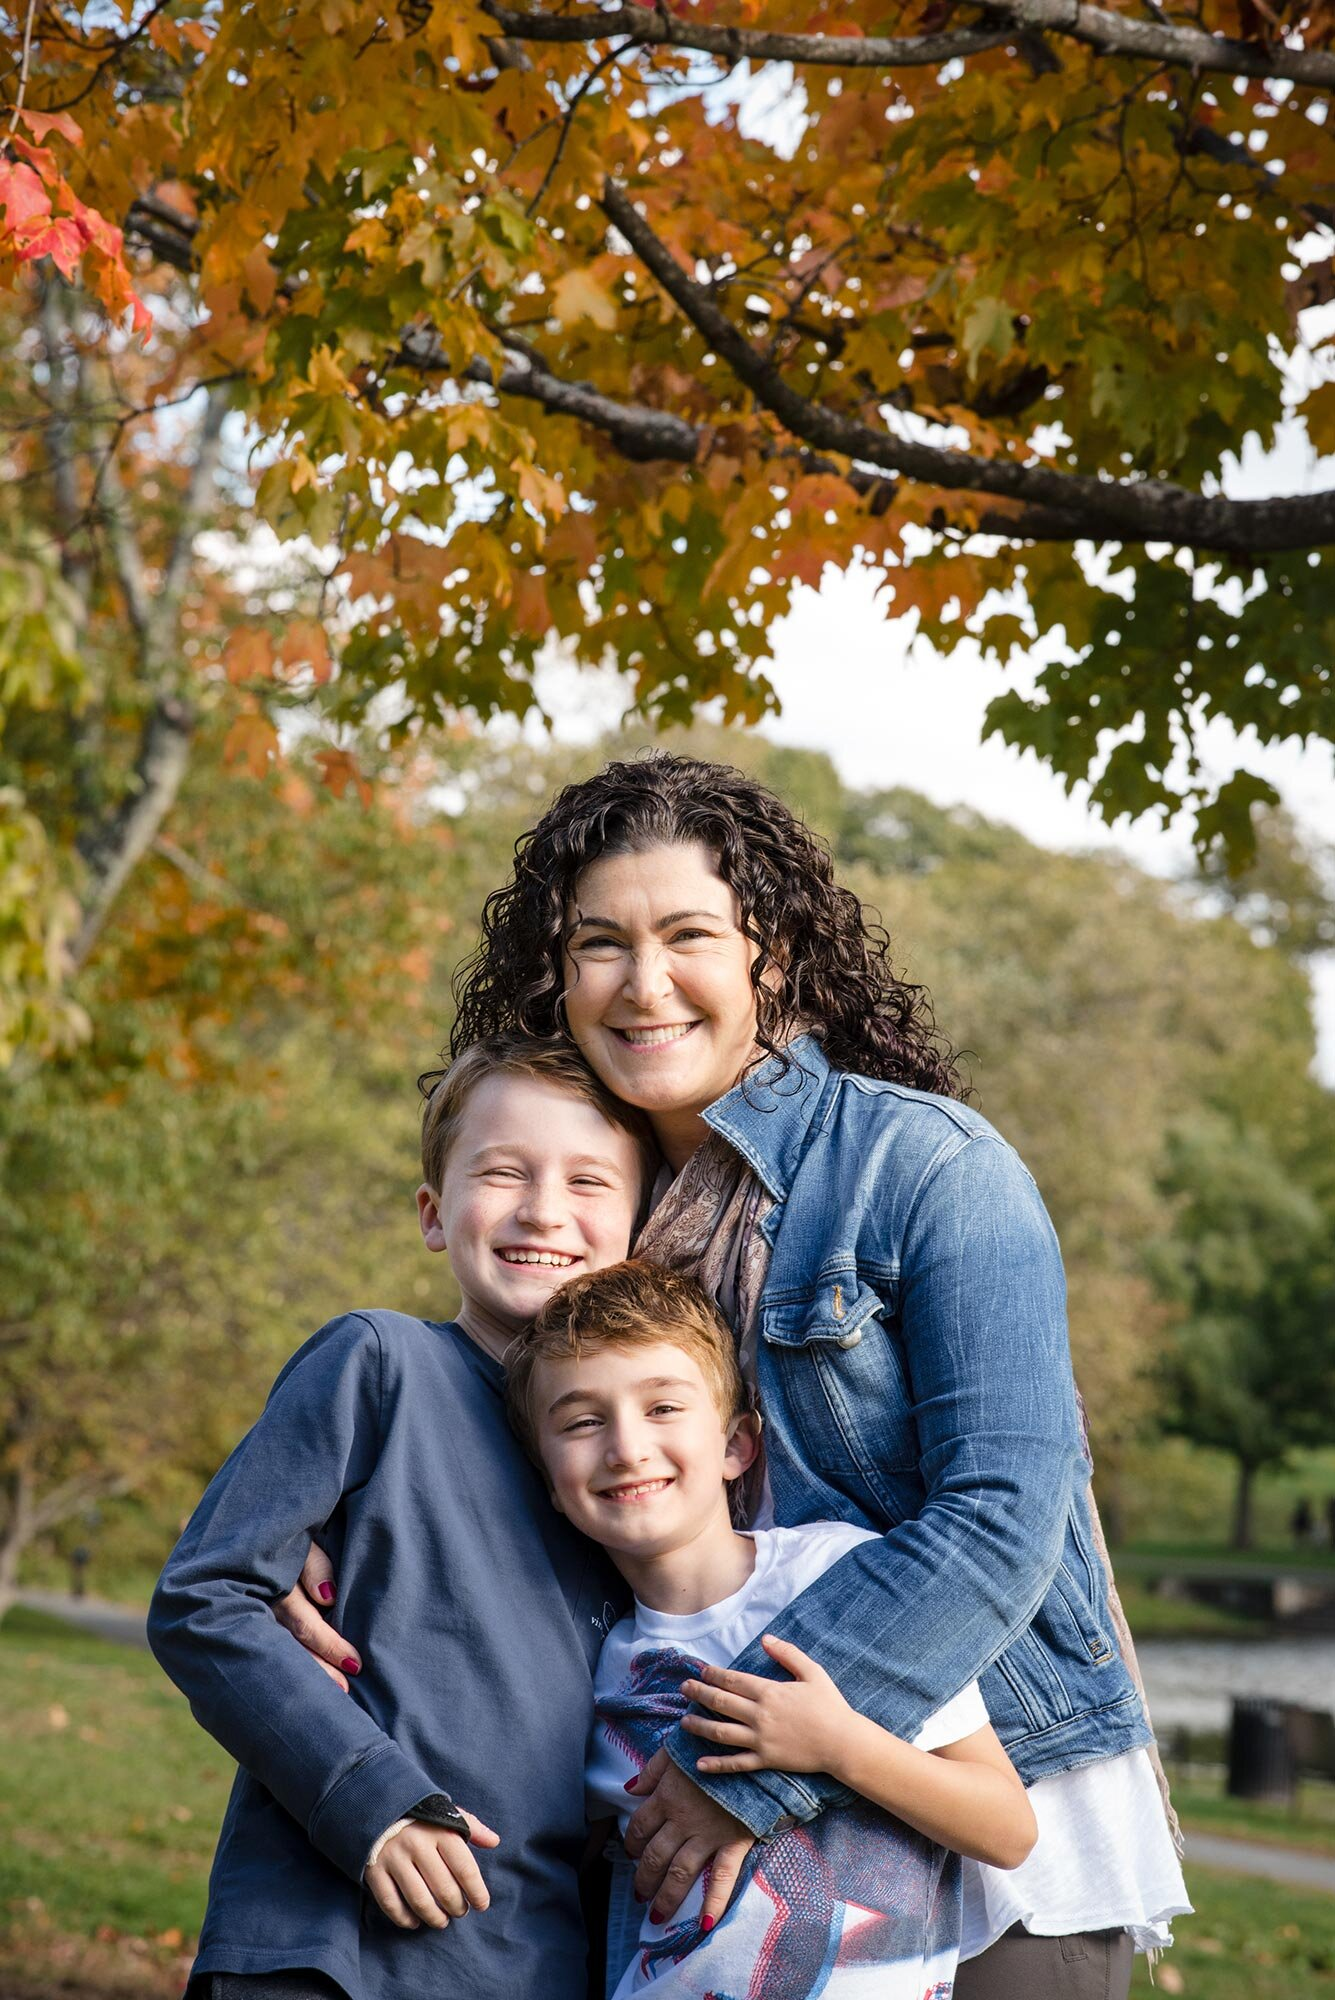 web_2018-10-20_Meredith_Berger-Family_006.jpg